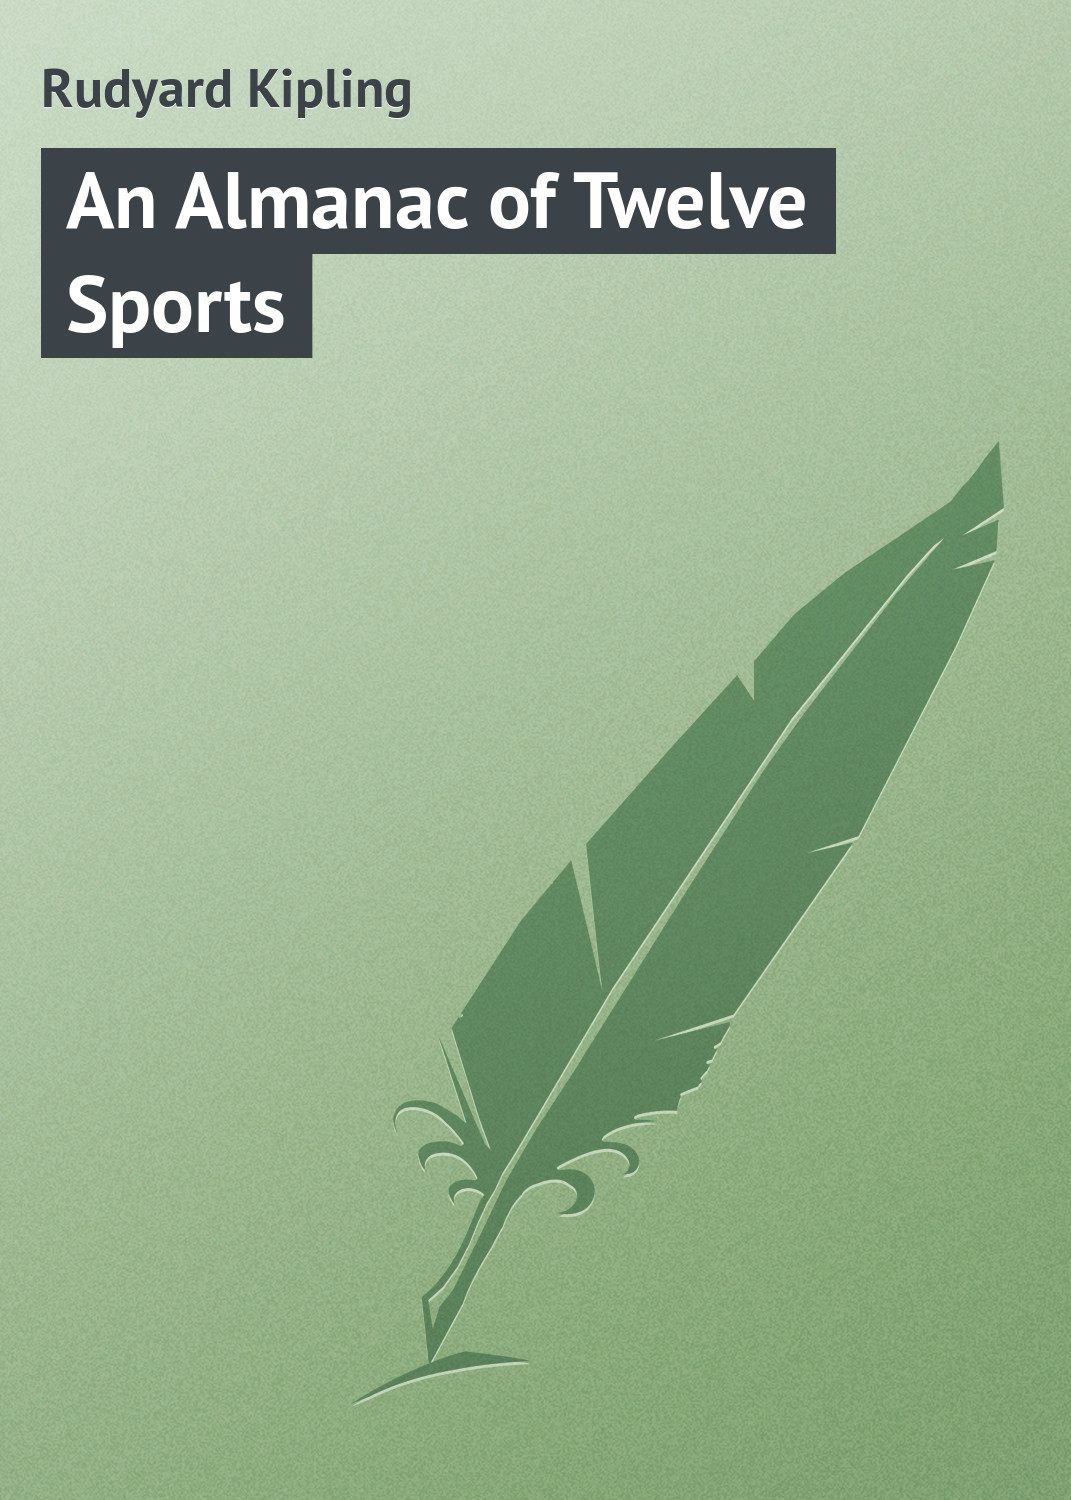 Редьярд Киплинг An Almanac of Twelve Sports редьярд киплинг лиспет